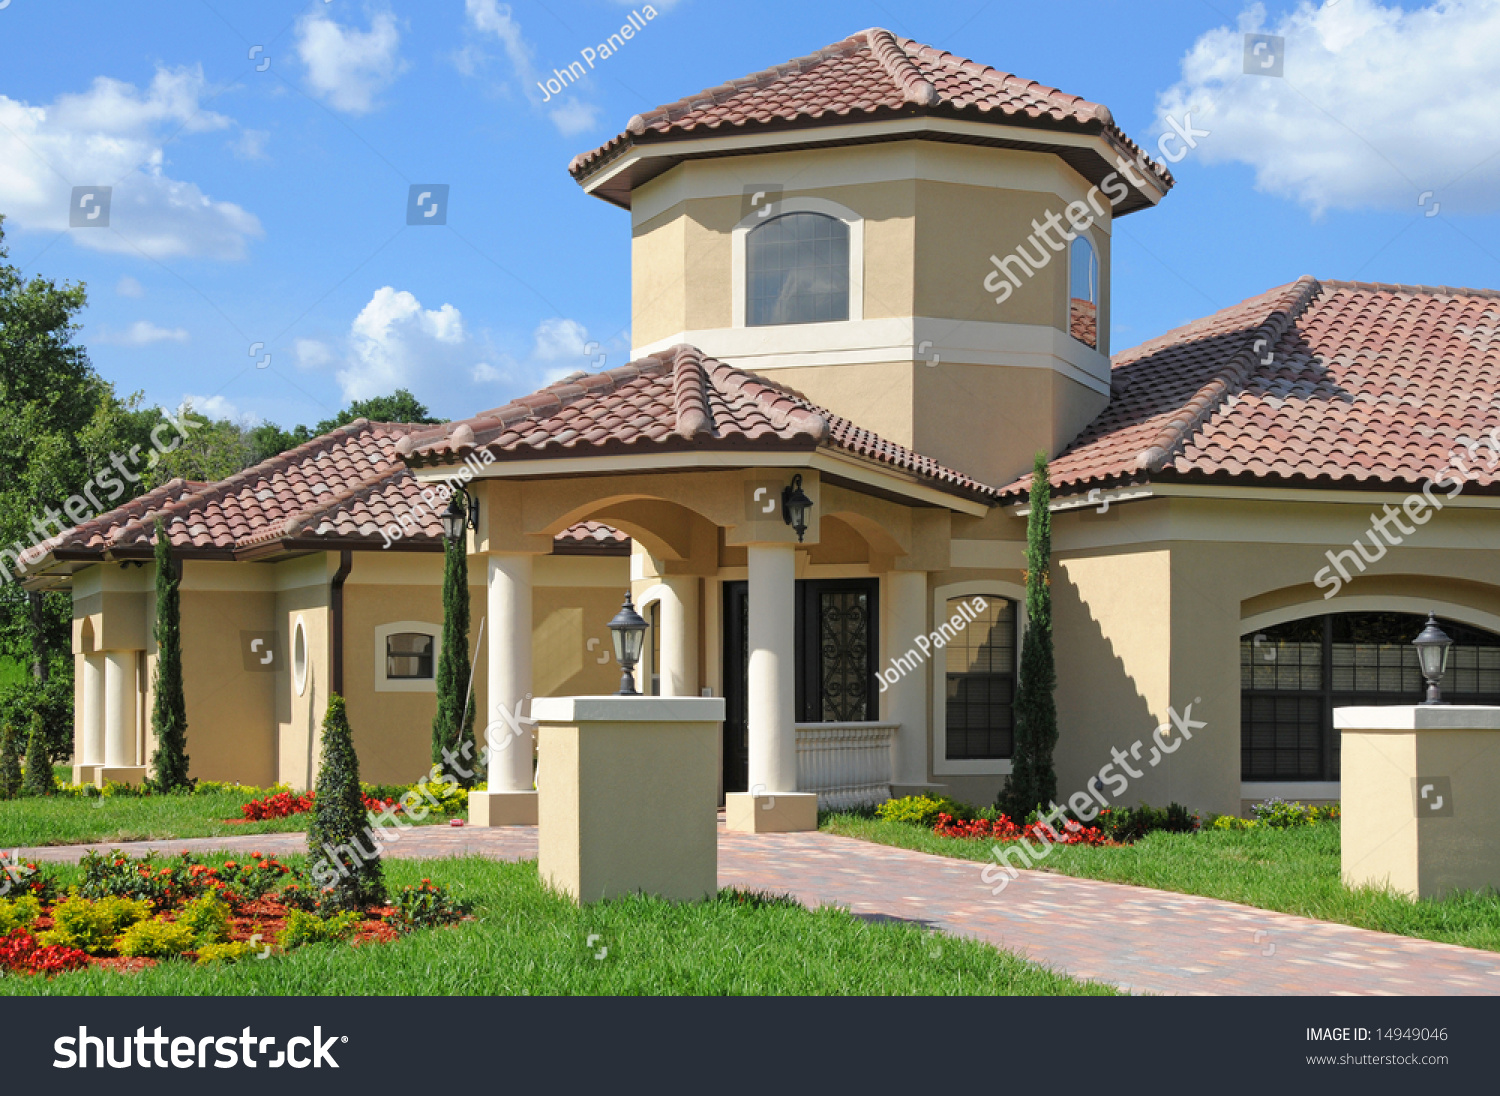 model home entrance with a beautiful blue sky stock photo 14949046 shutterstock. Black Bedroom Furniture Sets. Home Design Ideas